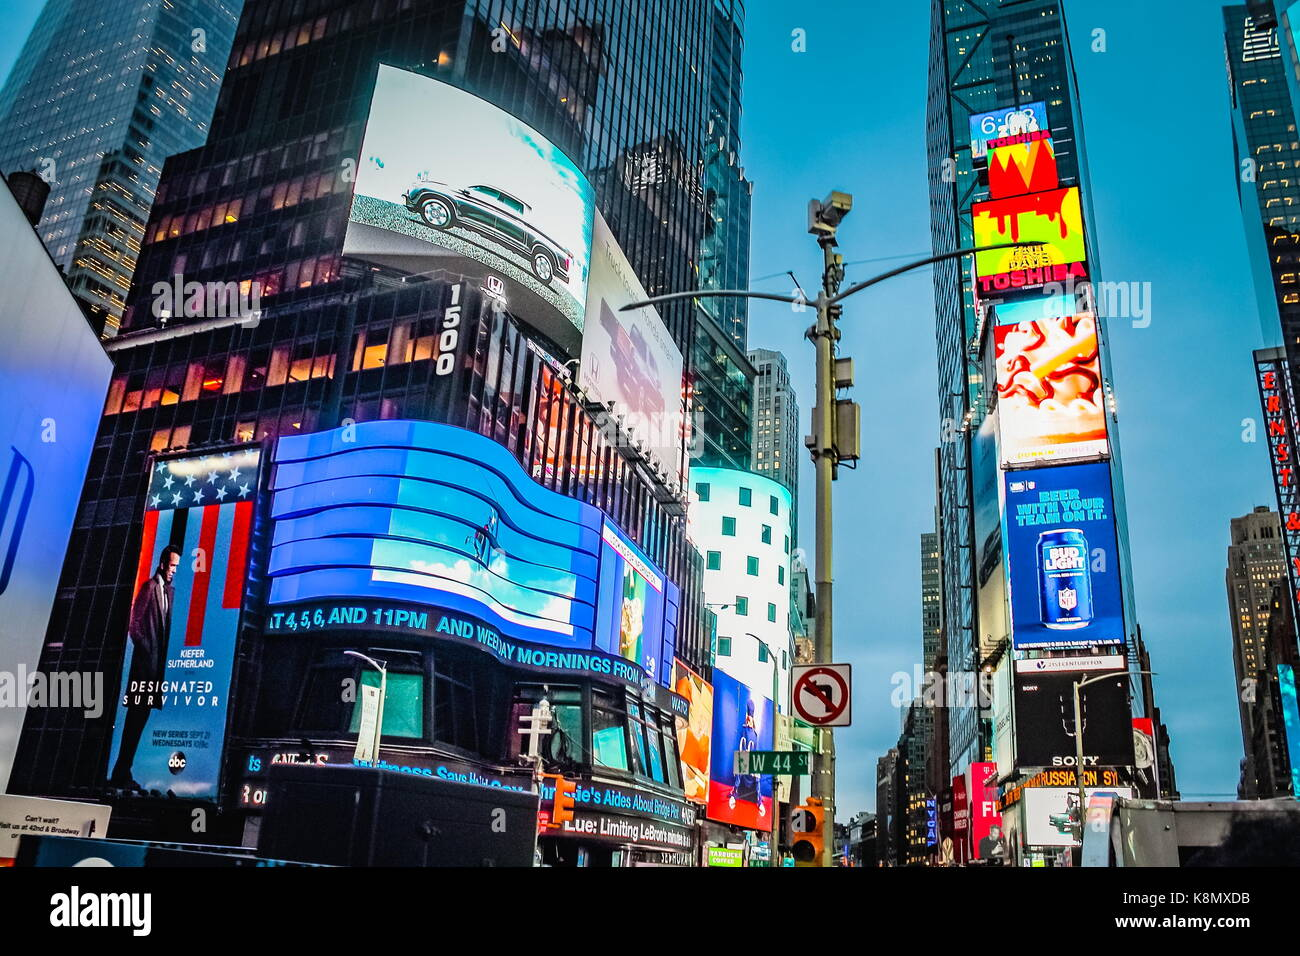 New York, USA - September 2016: Times Square advertising billboards in bright lights at West 44th Street, Manhattan. - Stock Image